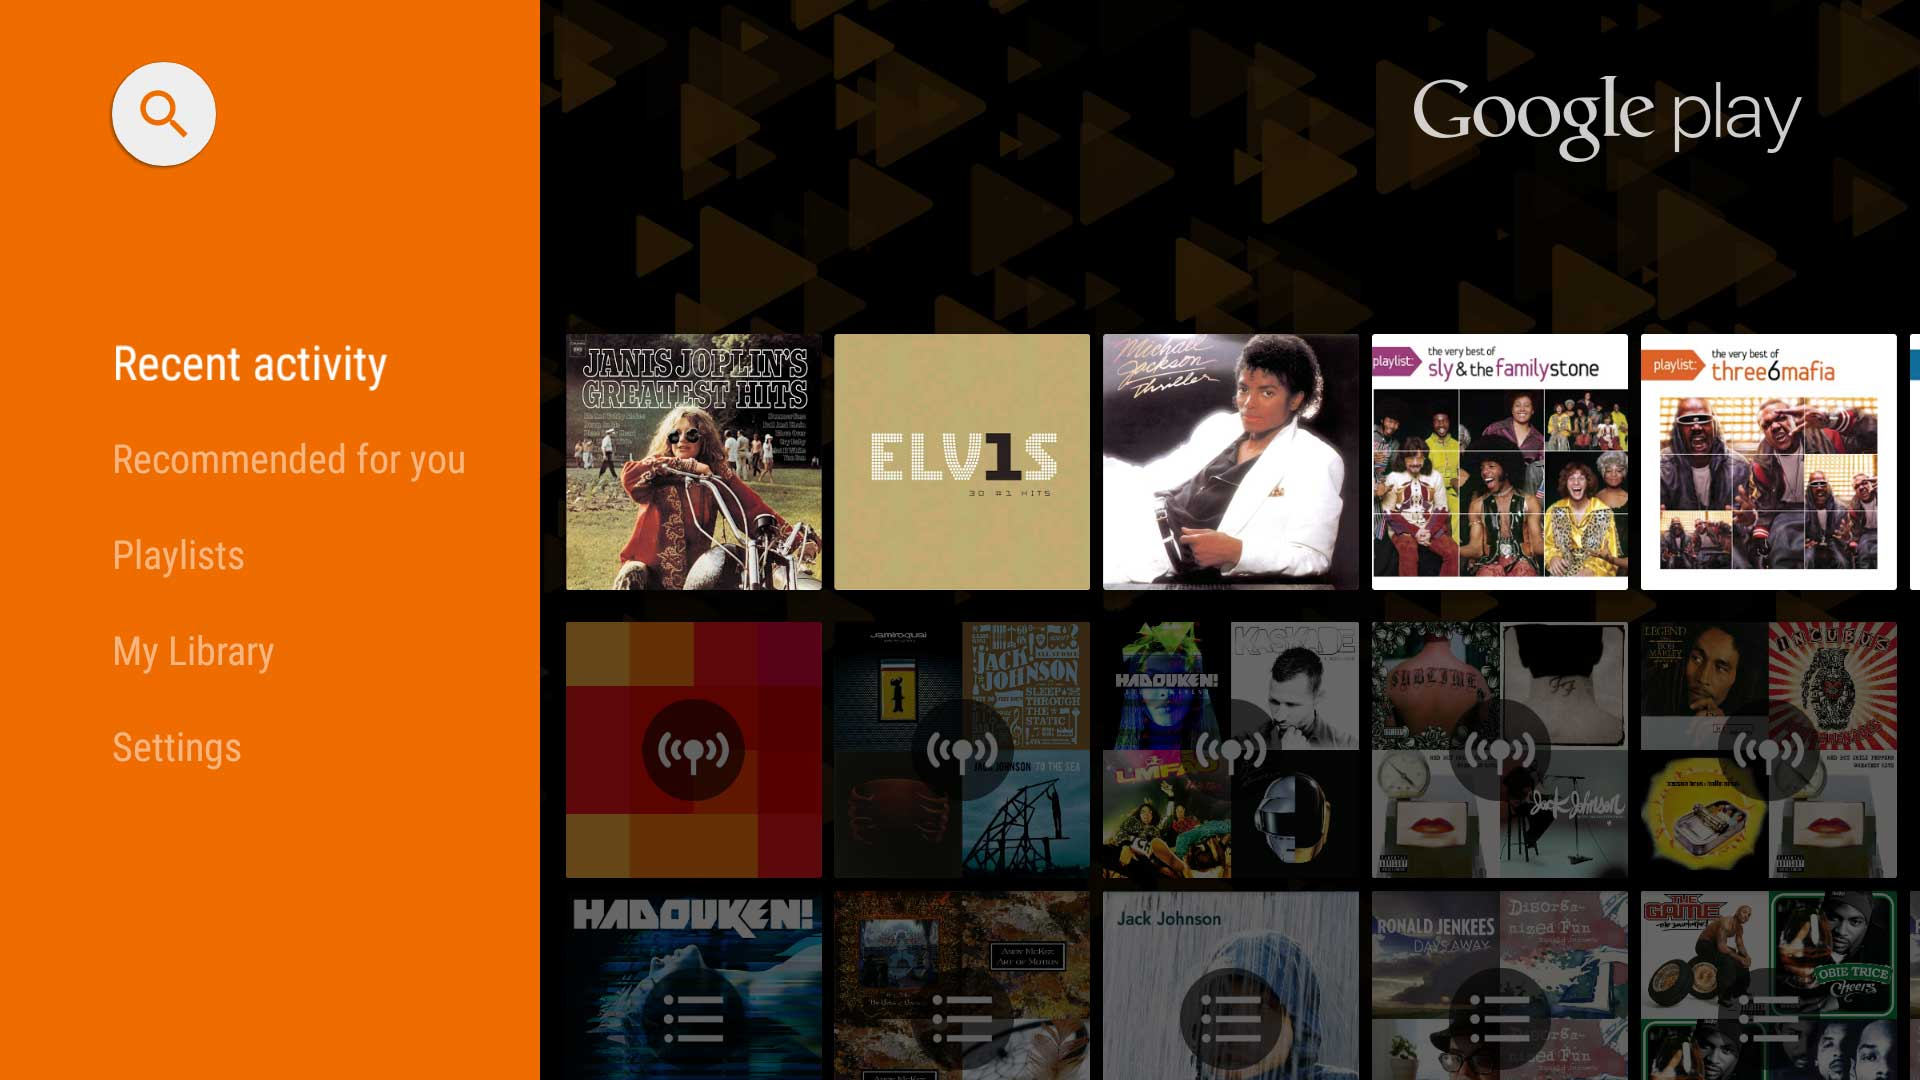 How to install Android TV's Google Play Music app on the Amazon Fire